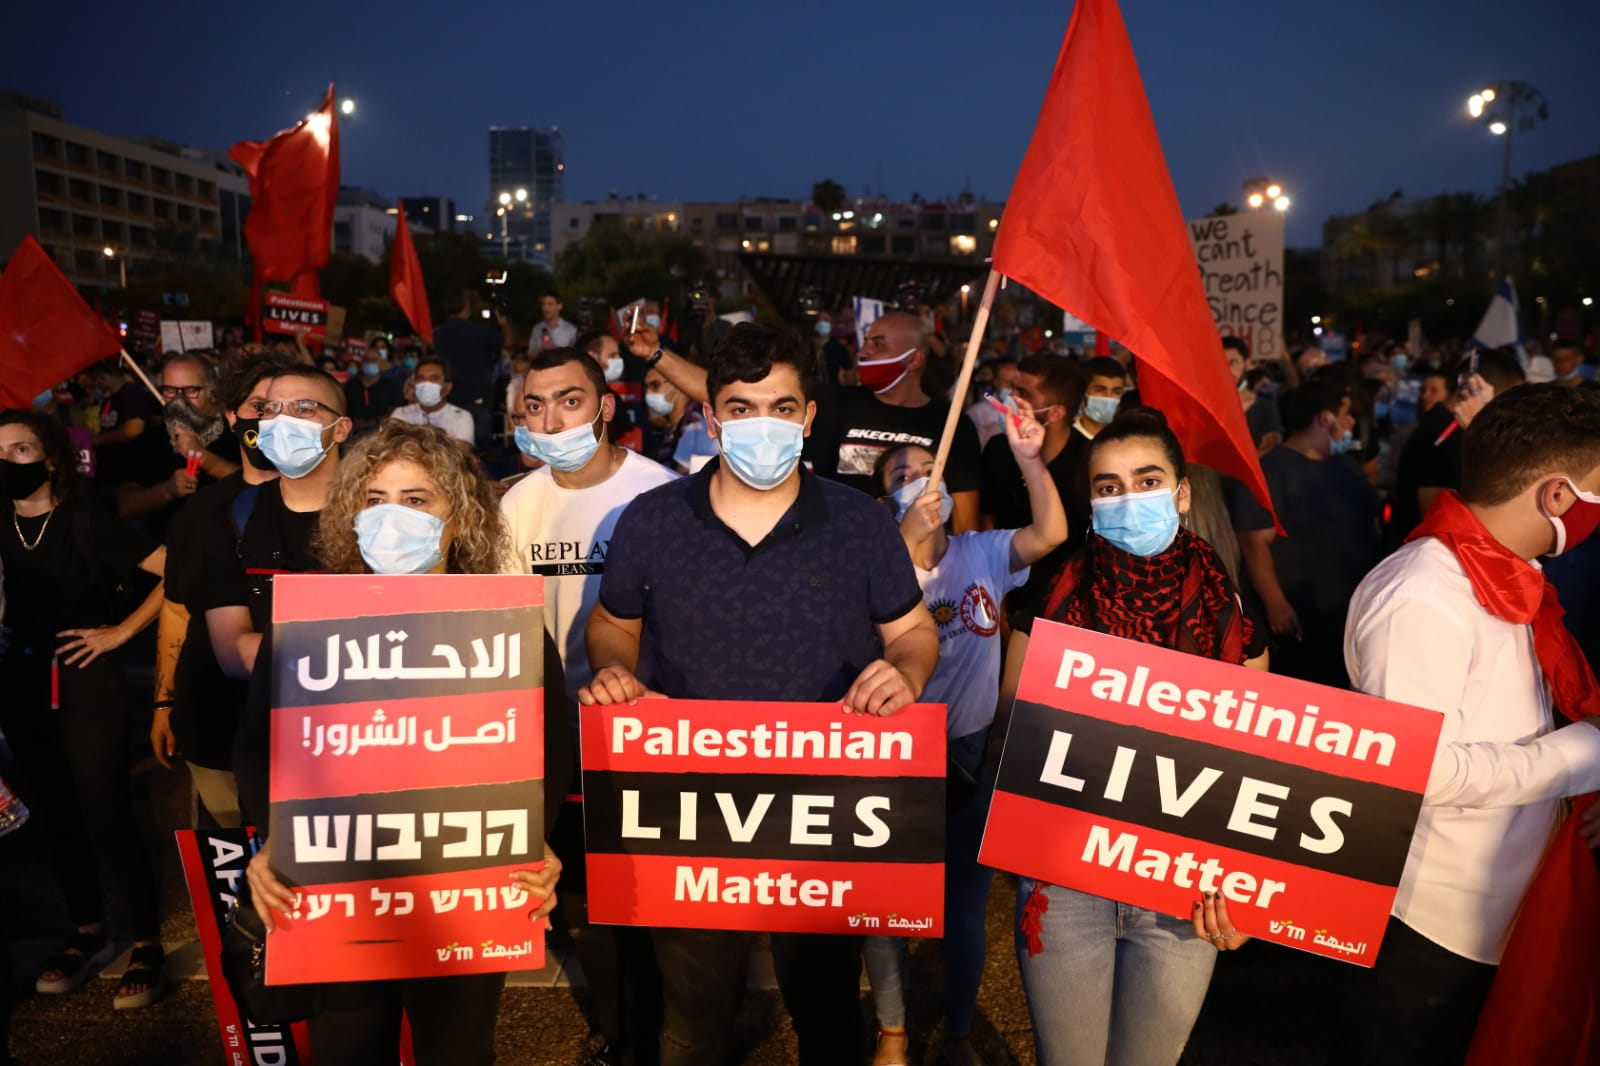 Thousands of Israeli and Palestinian protesters take part in a demonstration in Rabin Square against the government's annexation plan, Tel Aviv, June 6, 2020. (Oren Ziv)